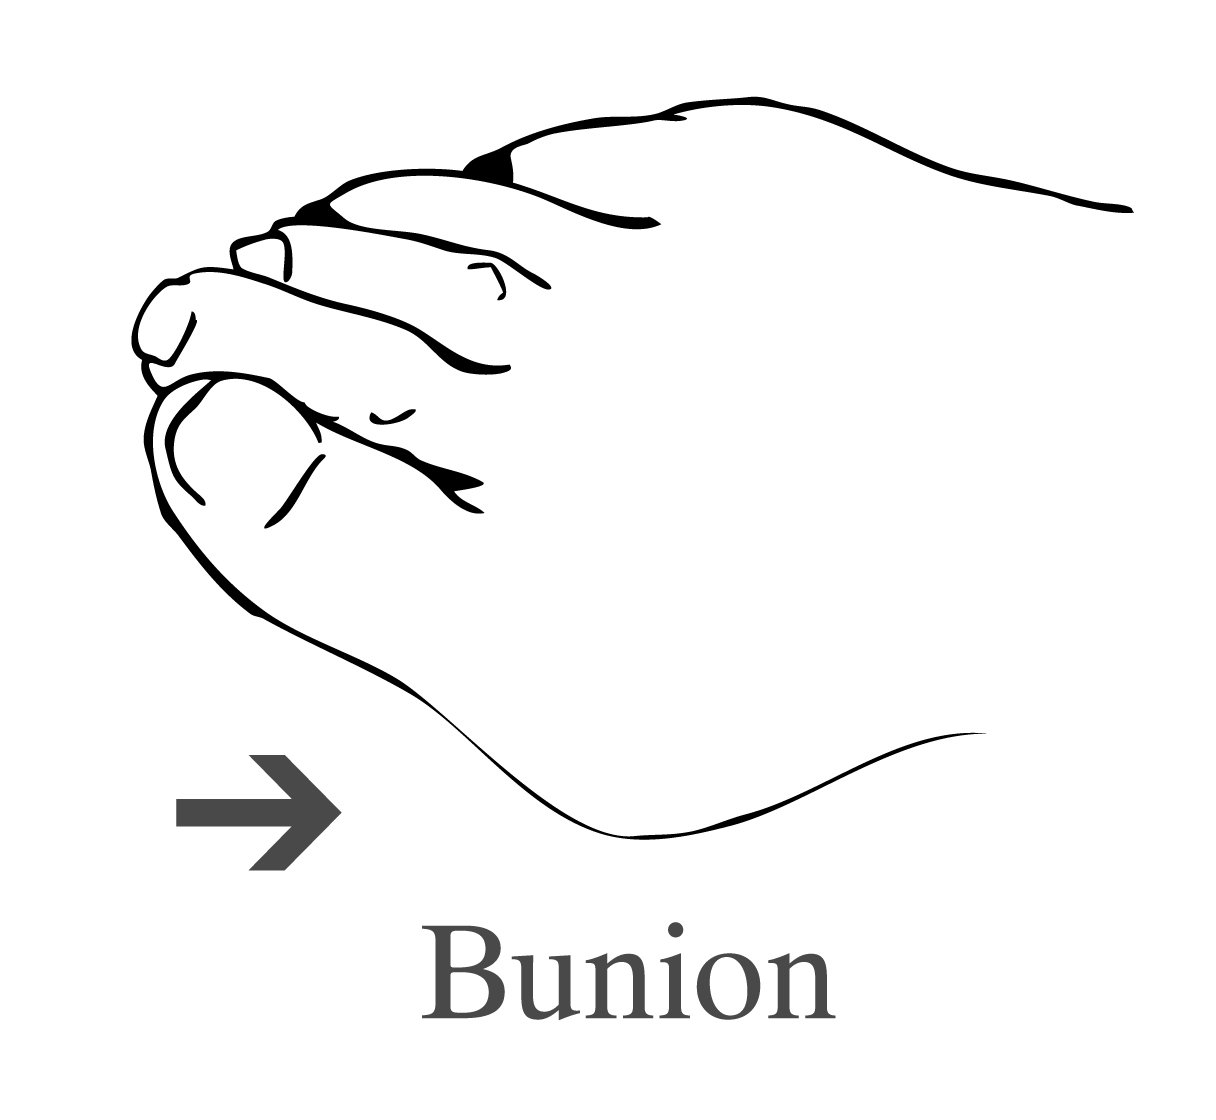 Picture of a bunion.